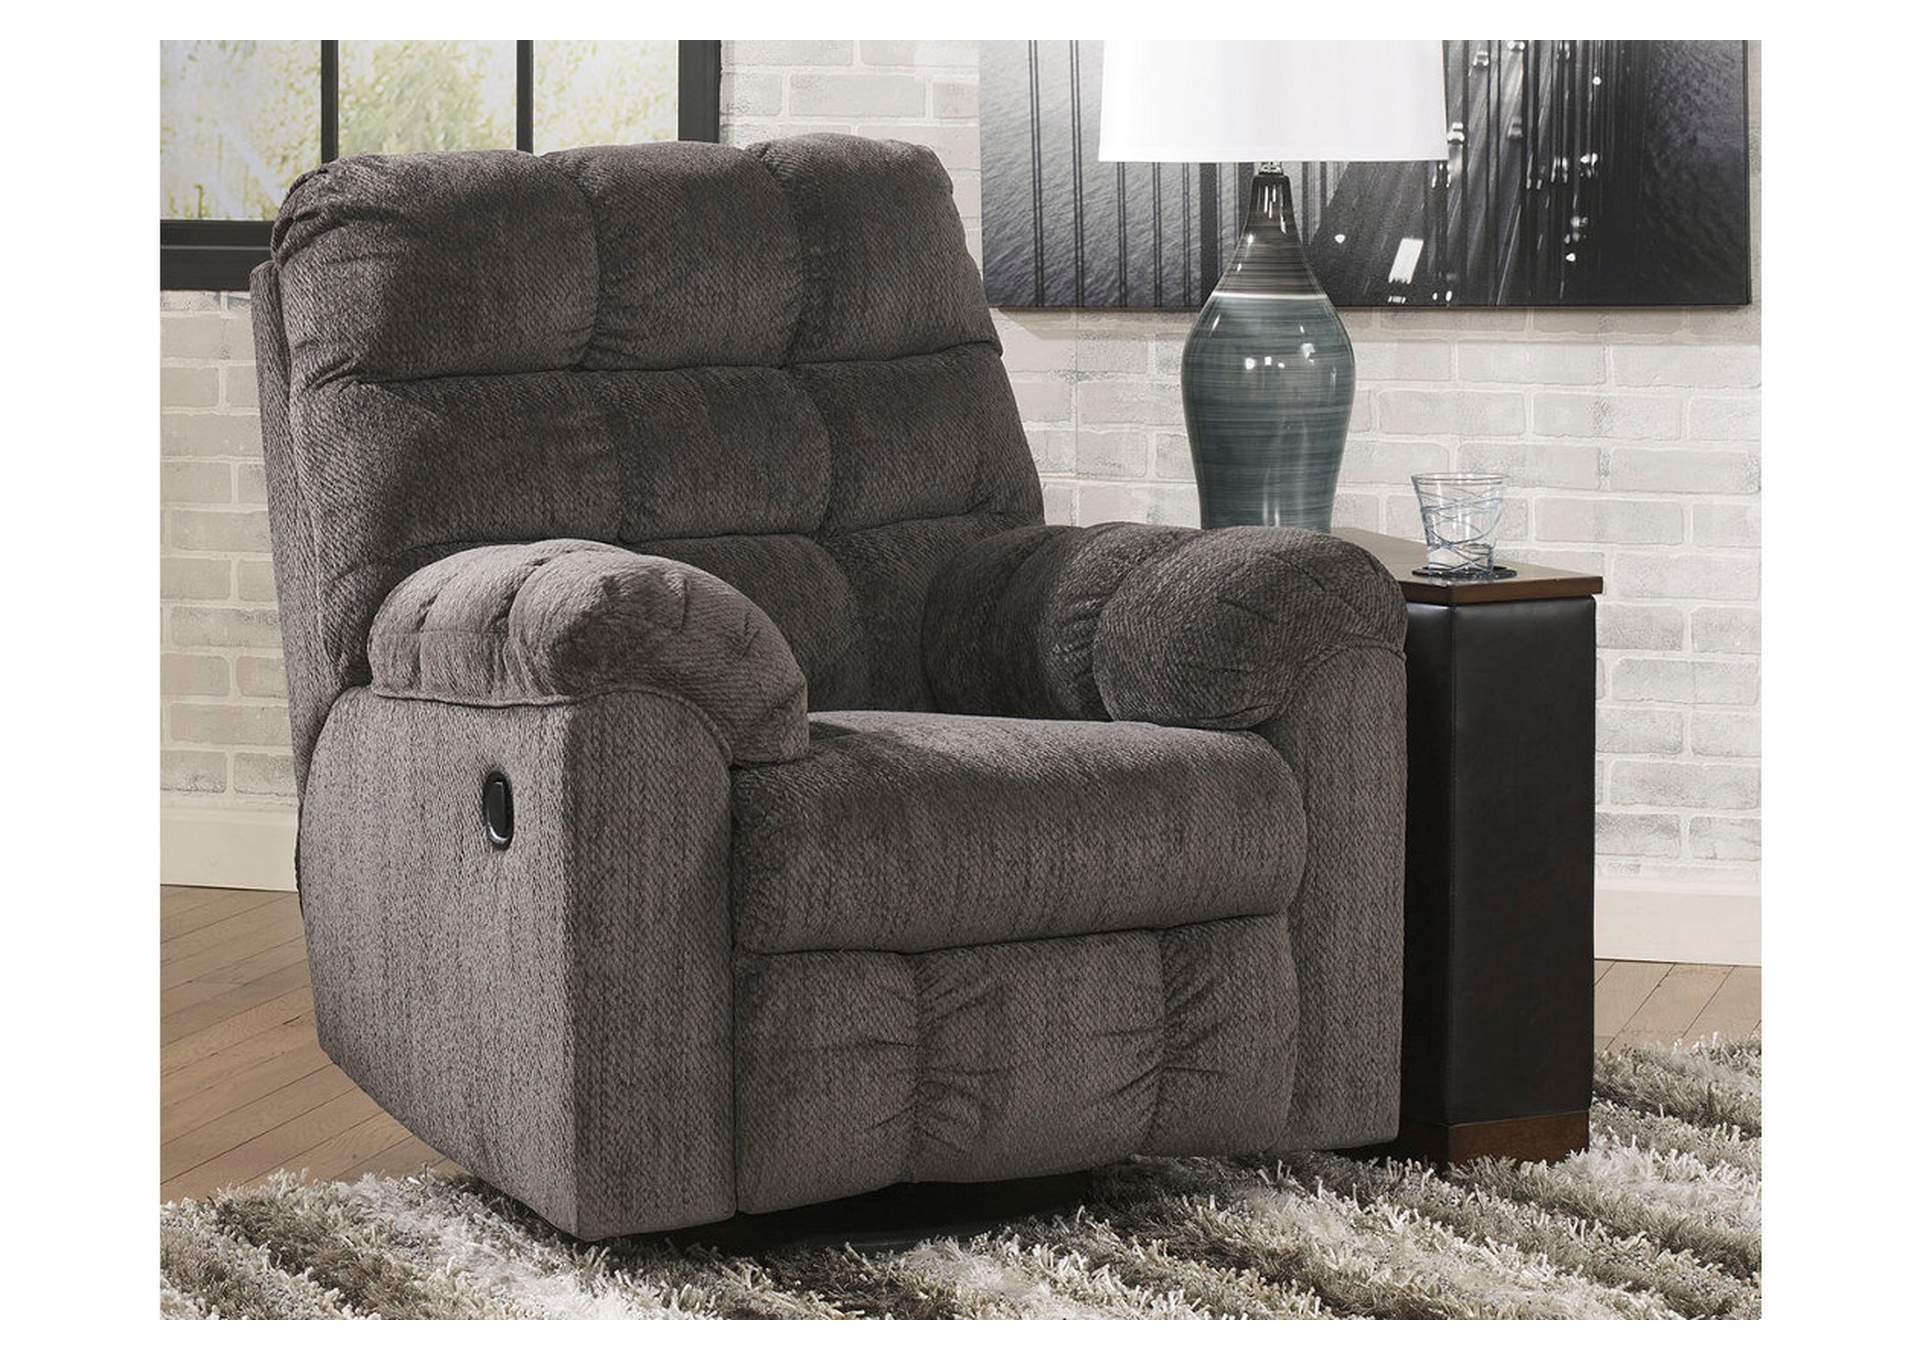 Acieona Slate Swivel Rocker Recliner,Signature Design By Ashley